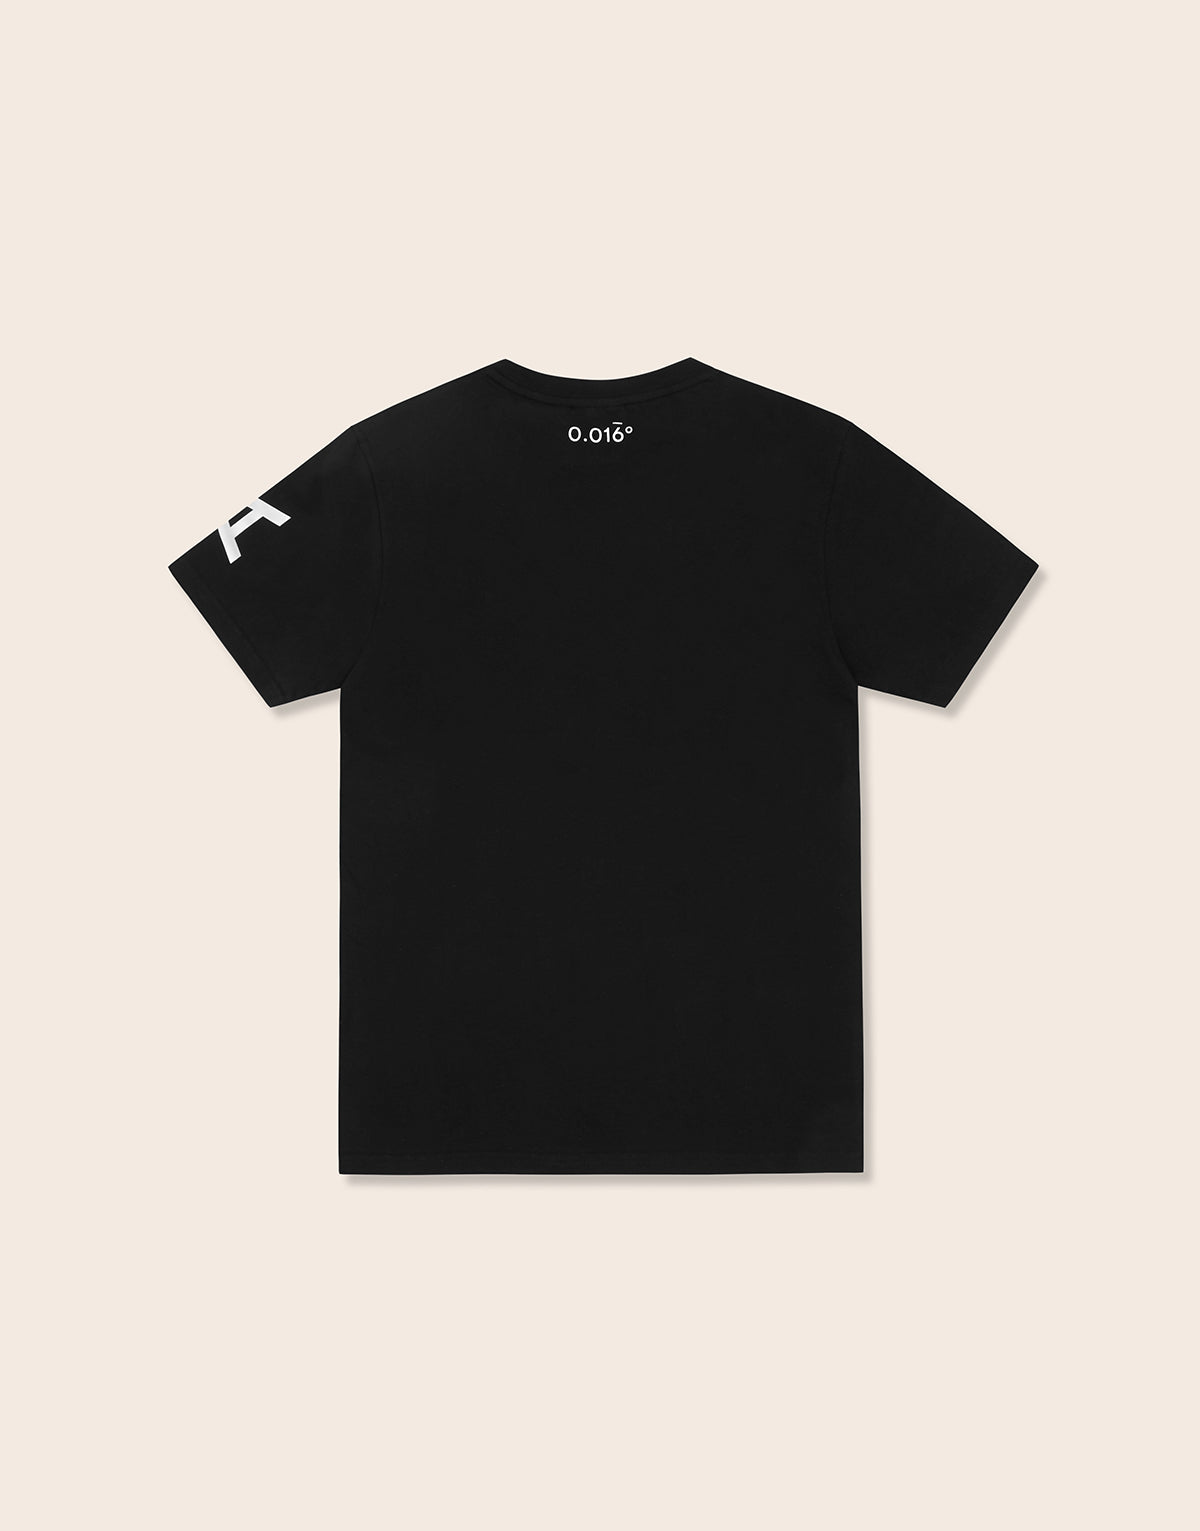 Idris T-Shirt Black - Arcminute